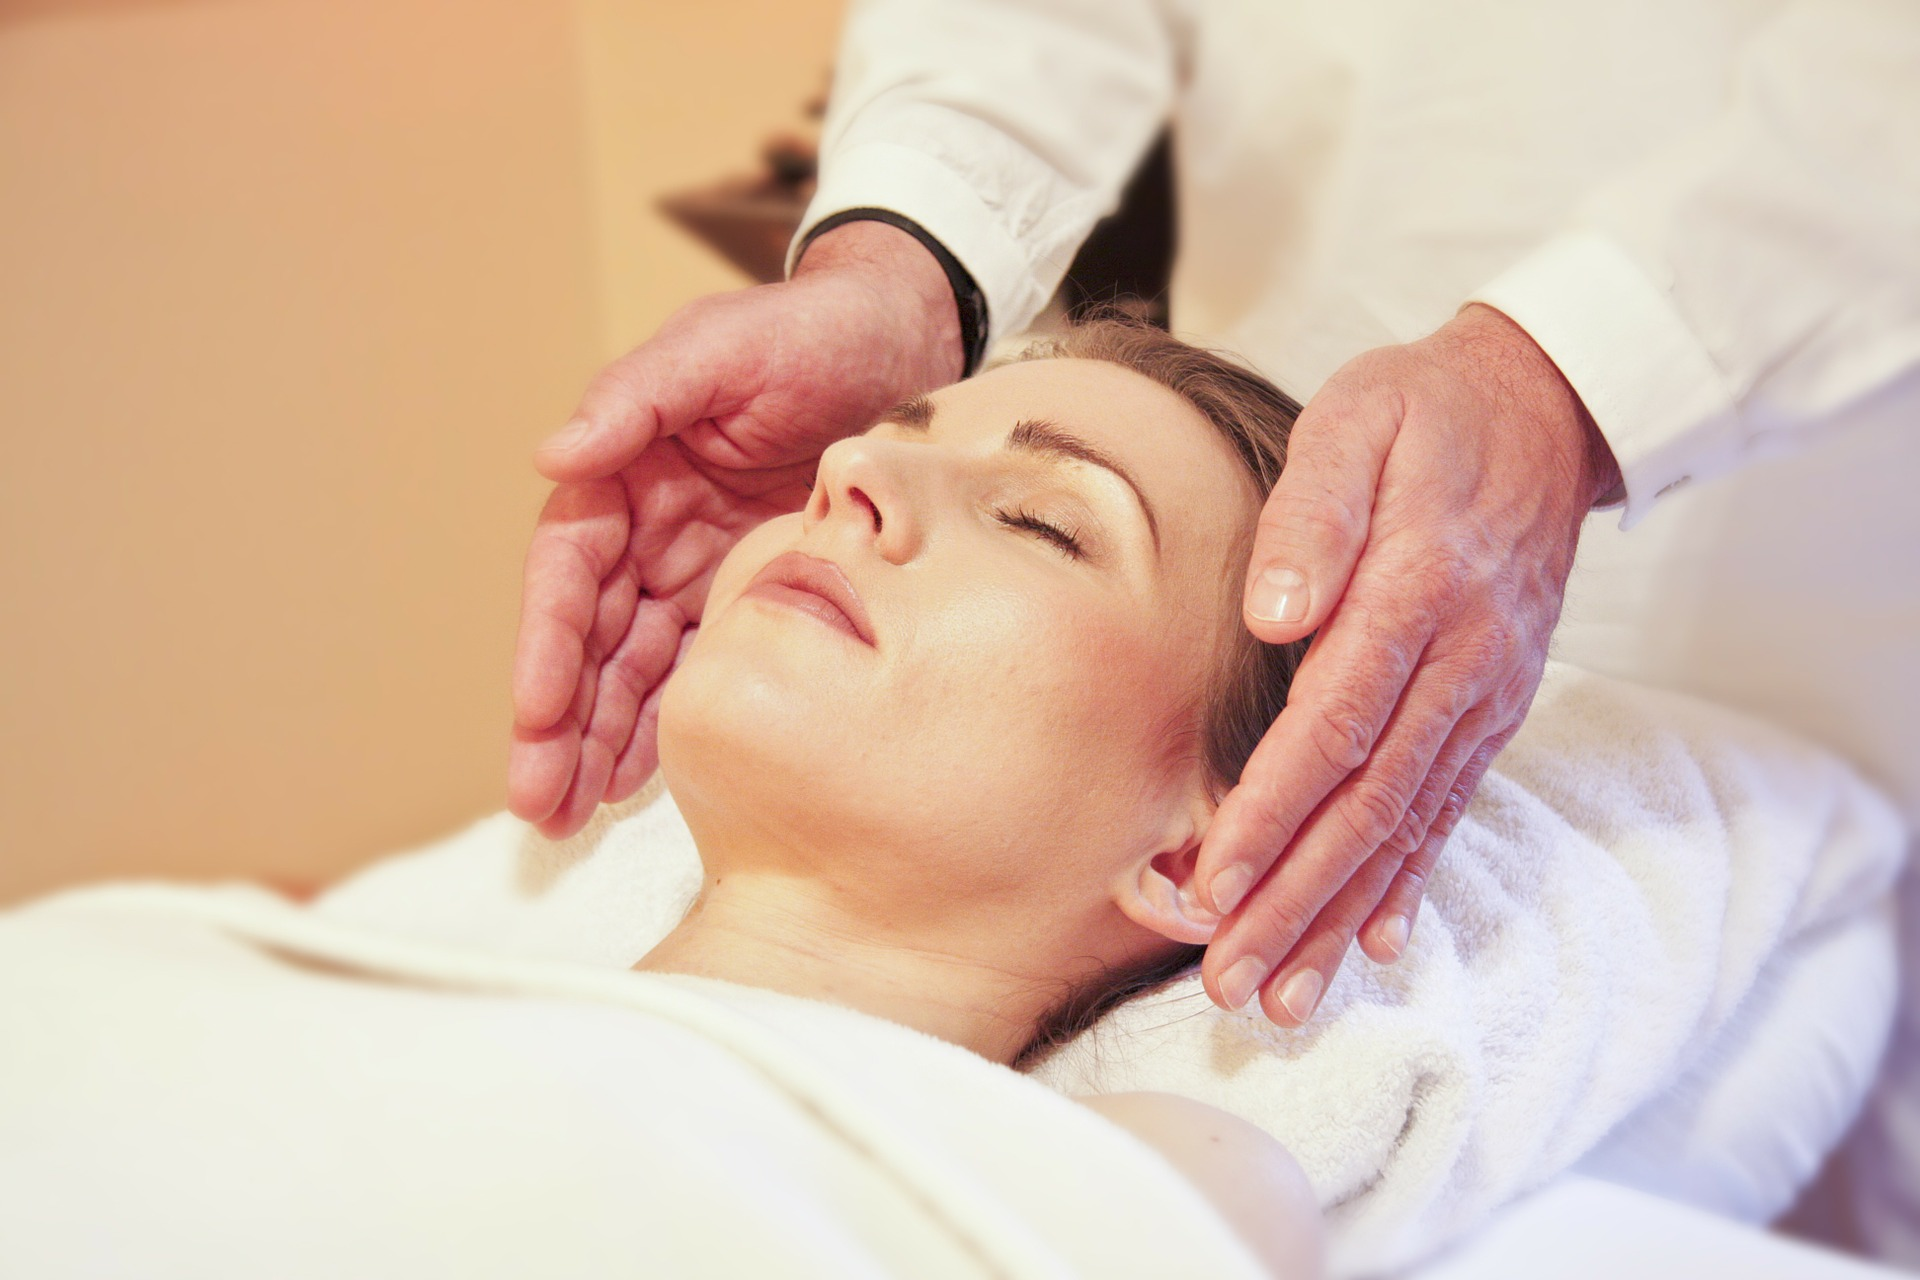 reiki  Reiki is a stress reduction technique that promotes the body's natural ability to heal while laying on the treatment table. By helping the body reduce the negative impact of stress, Reiki promotes faster healing, reduces intensity and frequency of pain, relieves chronic pain, reduces anxiety, and improves sleep. A non-invasive treatment, Reiki is done fully clothed and is appropriate for a wide range of conditions. Our Reiki practitioner, Kandi Austin, is a Level III Reiki practitioner. Click  here  to request an appointment or email  info@solyoga.org  for more information.  $75 for 45 min   |   $90 for 60 min   |   $100 for 75 minutes